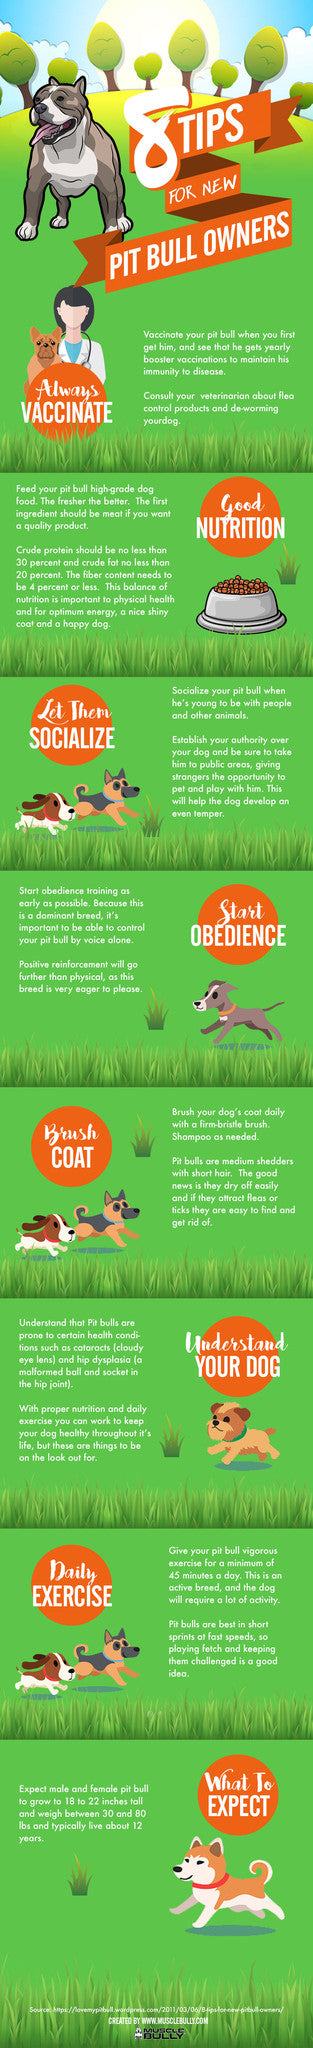 Pit Bull Tips for New Owners Raising This Beautiful Breed.